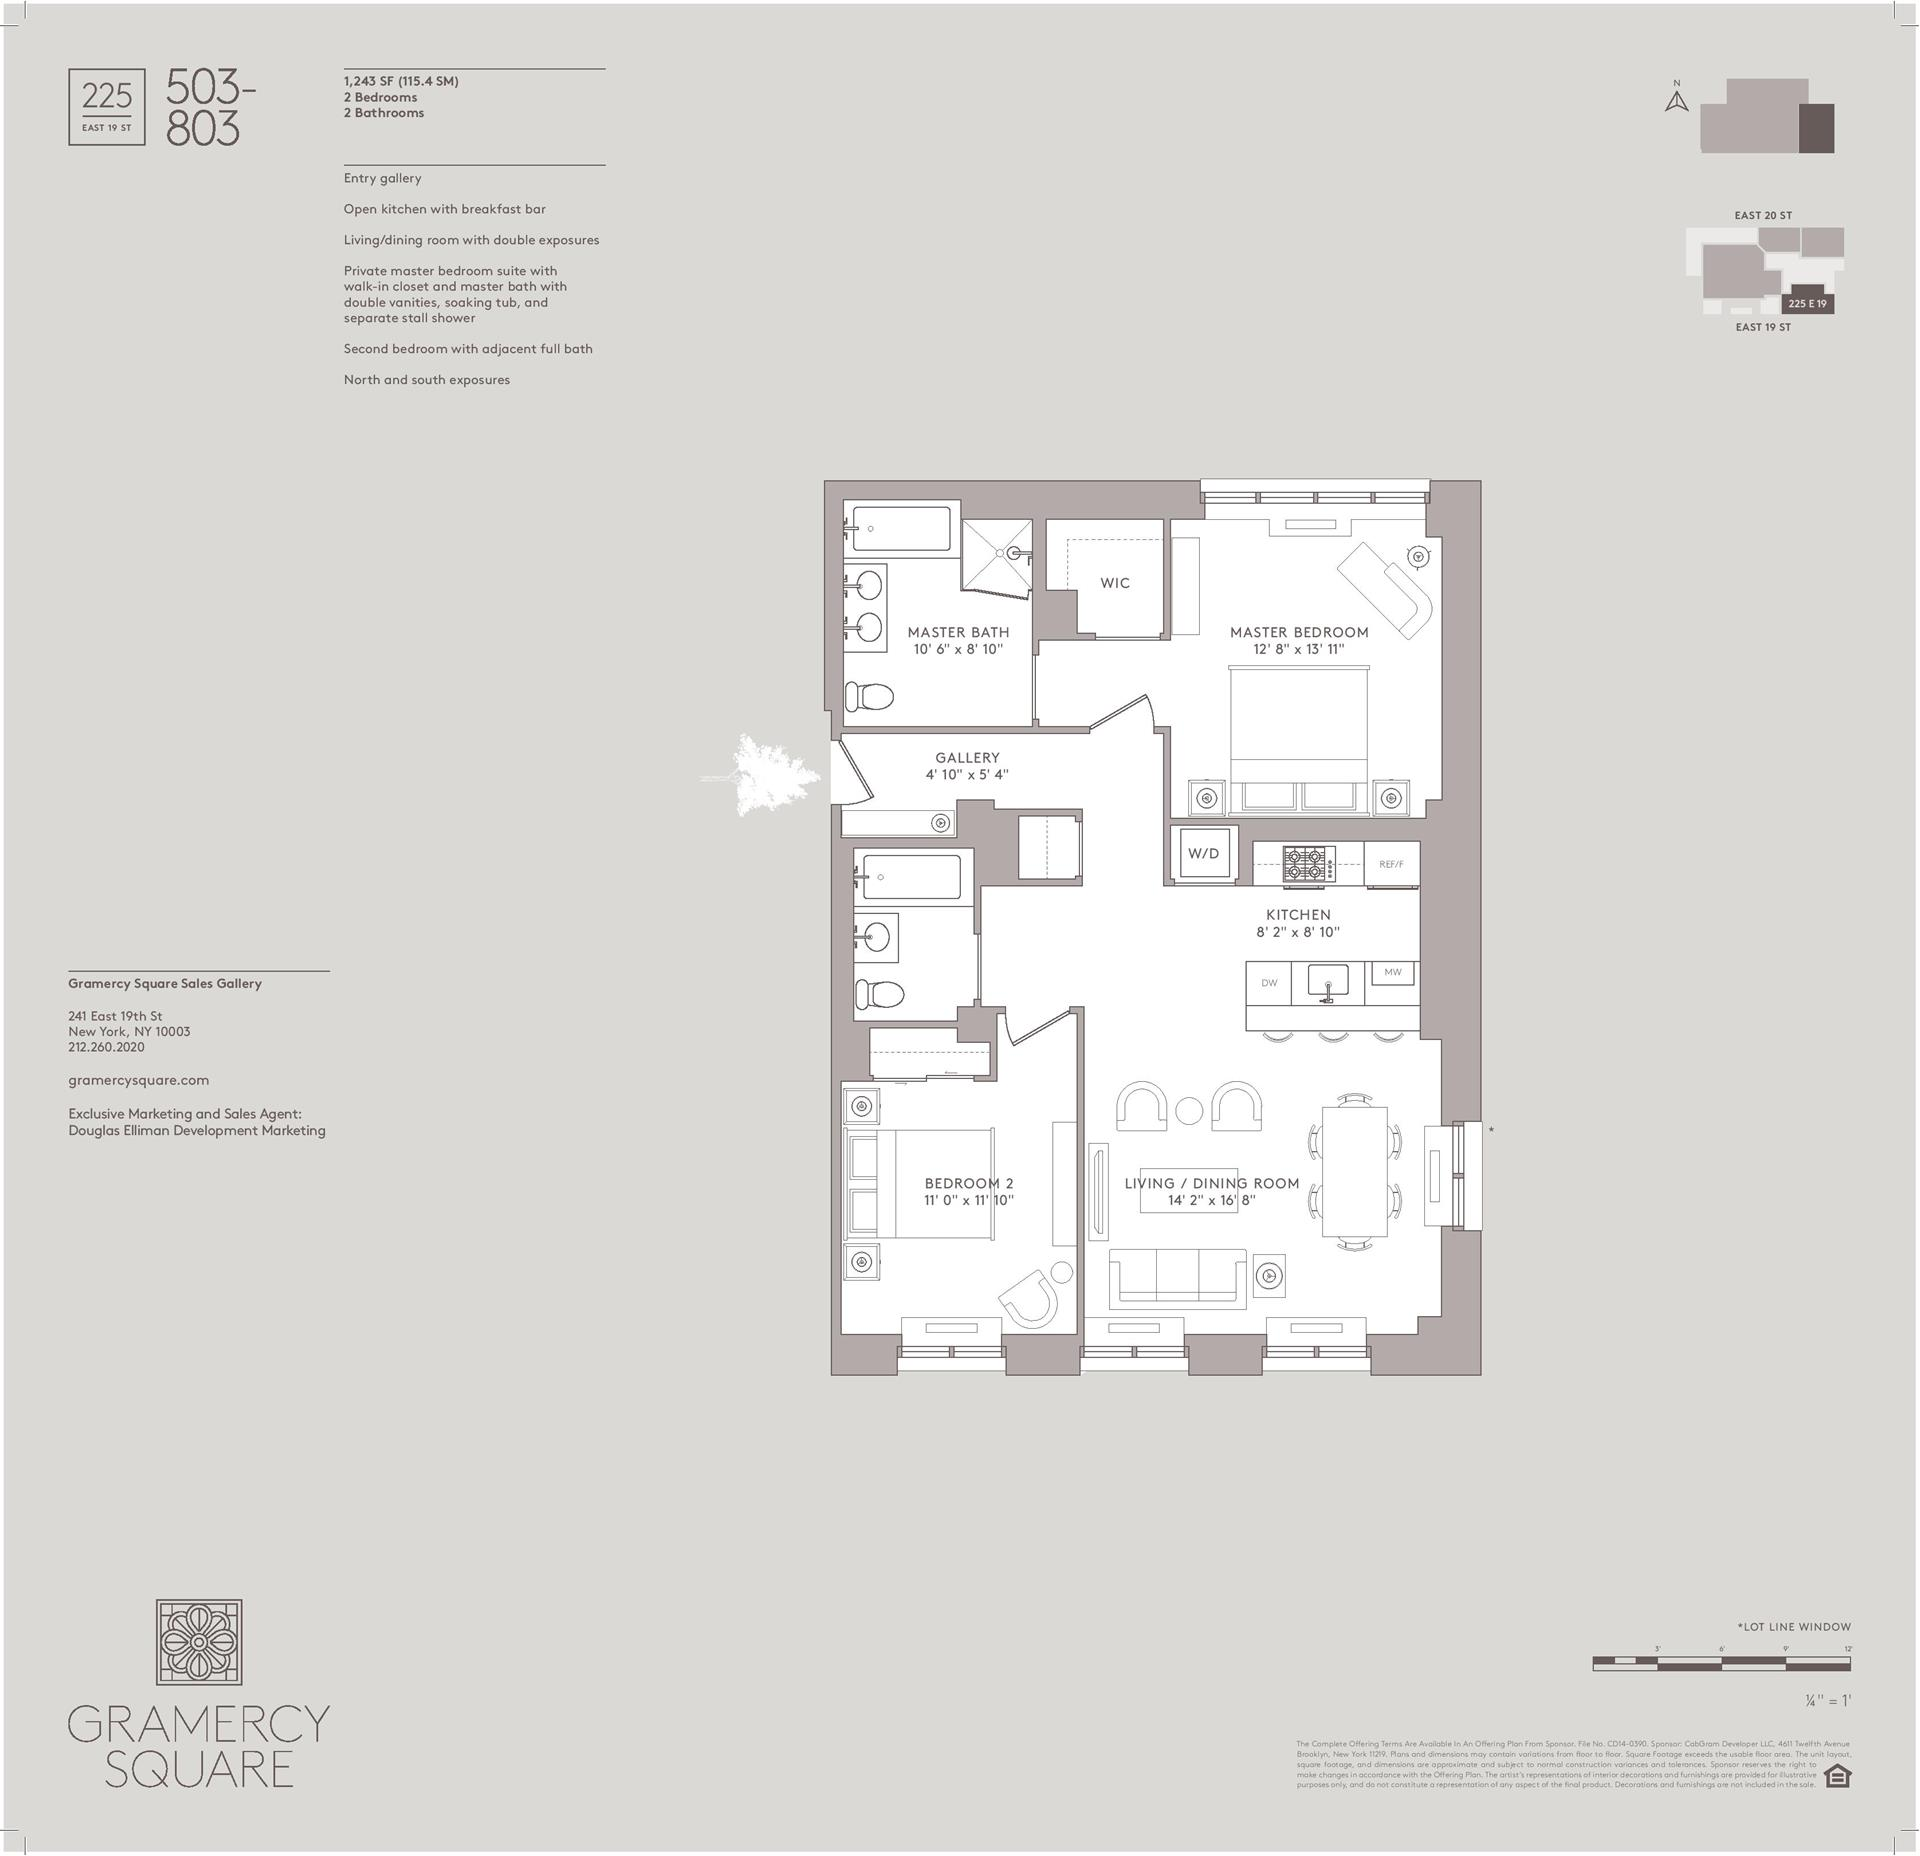 Floor plan of Gramercy Square, 225 East 19th St, 703 - Gramercy - Union Square, New York